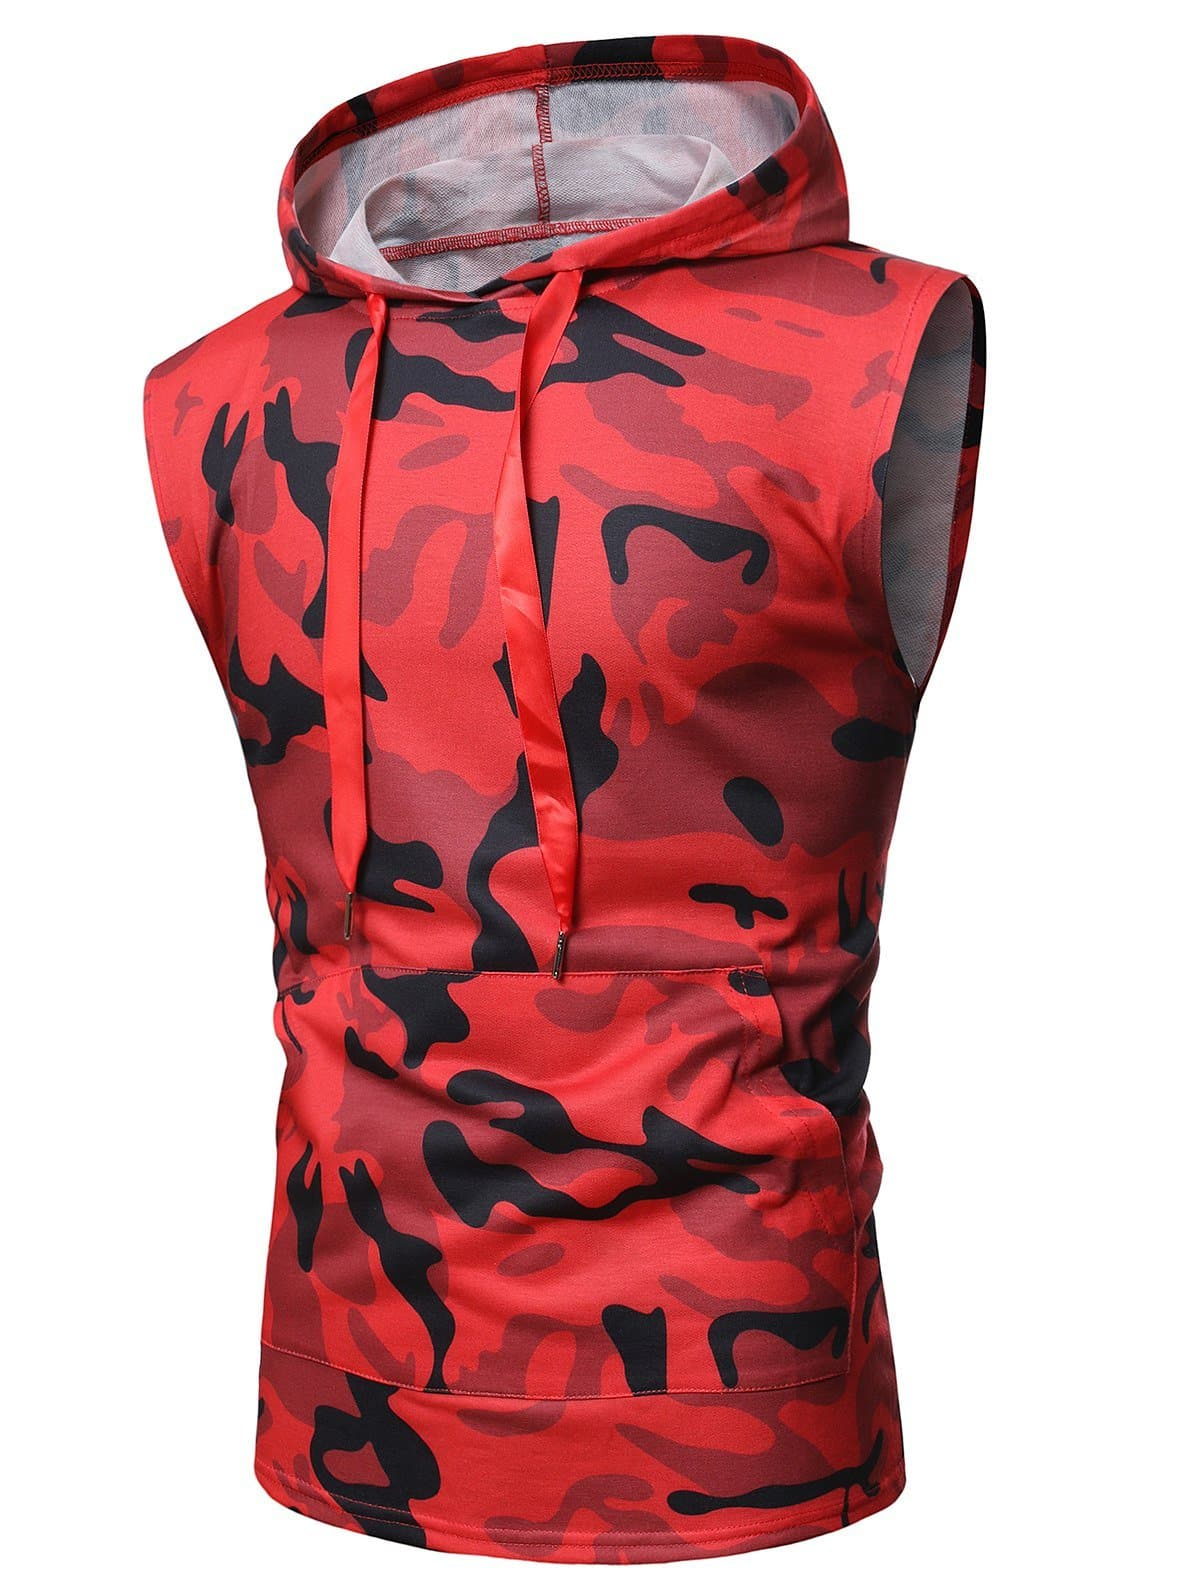 Camouflage Print Back Zip Hooded Tank Top - M - FLJ CORPORATIONS